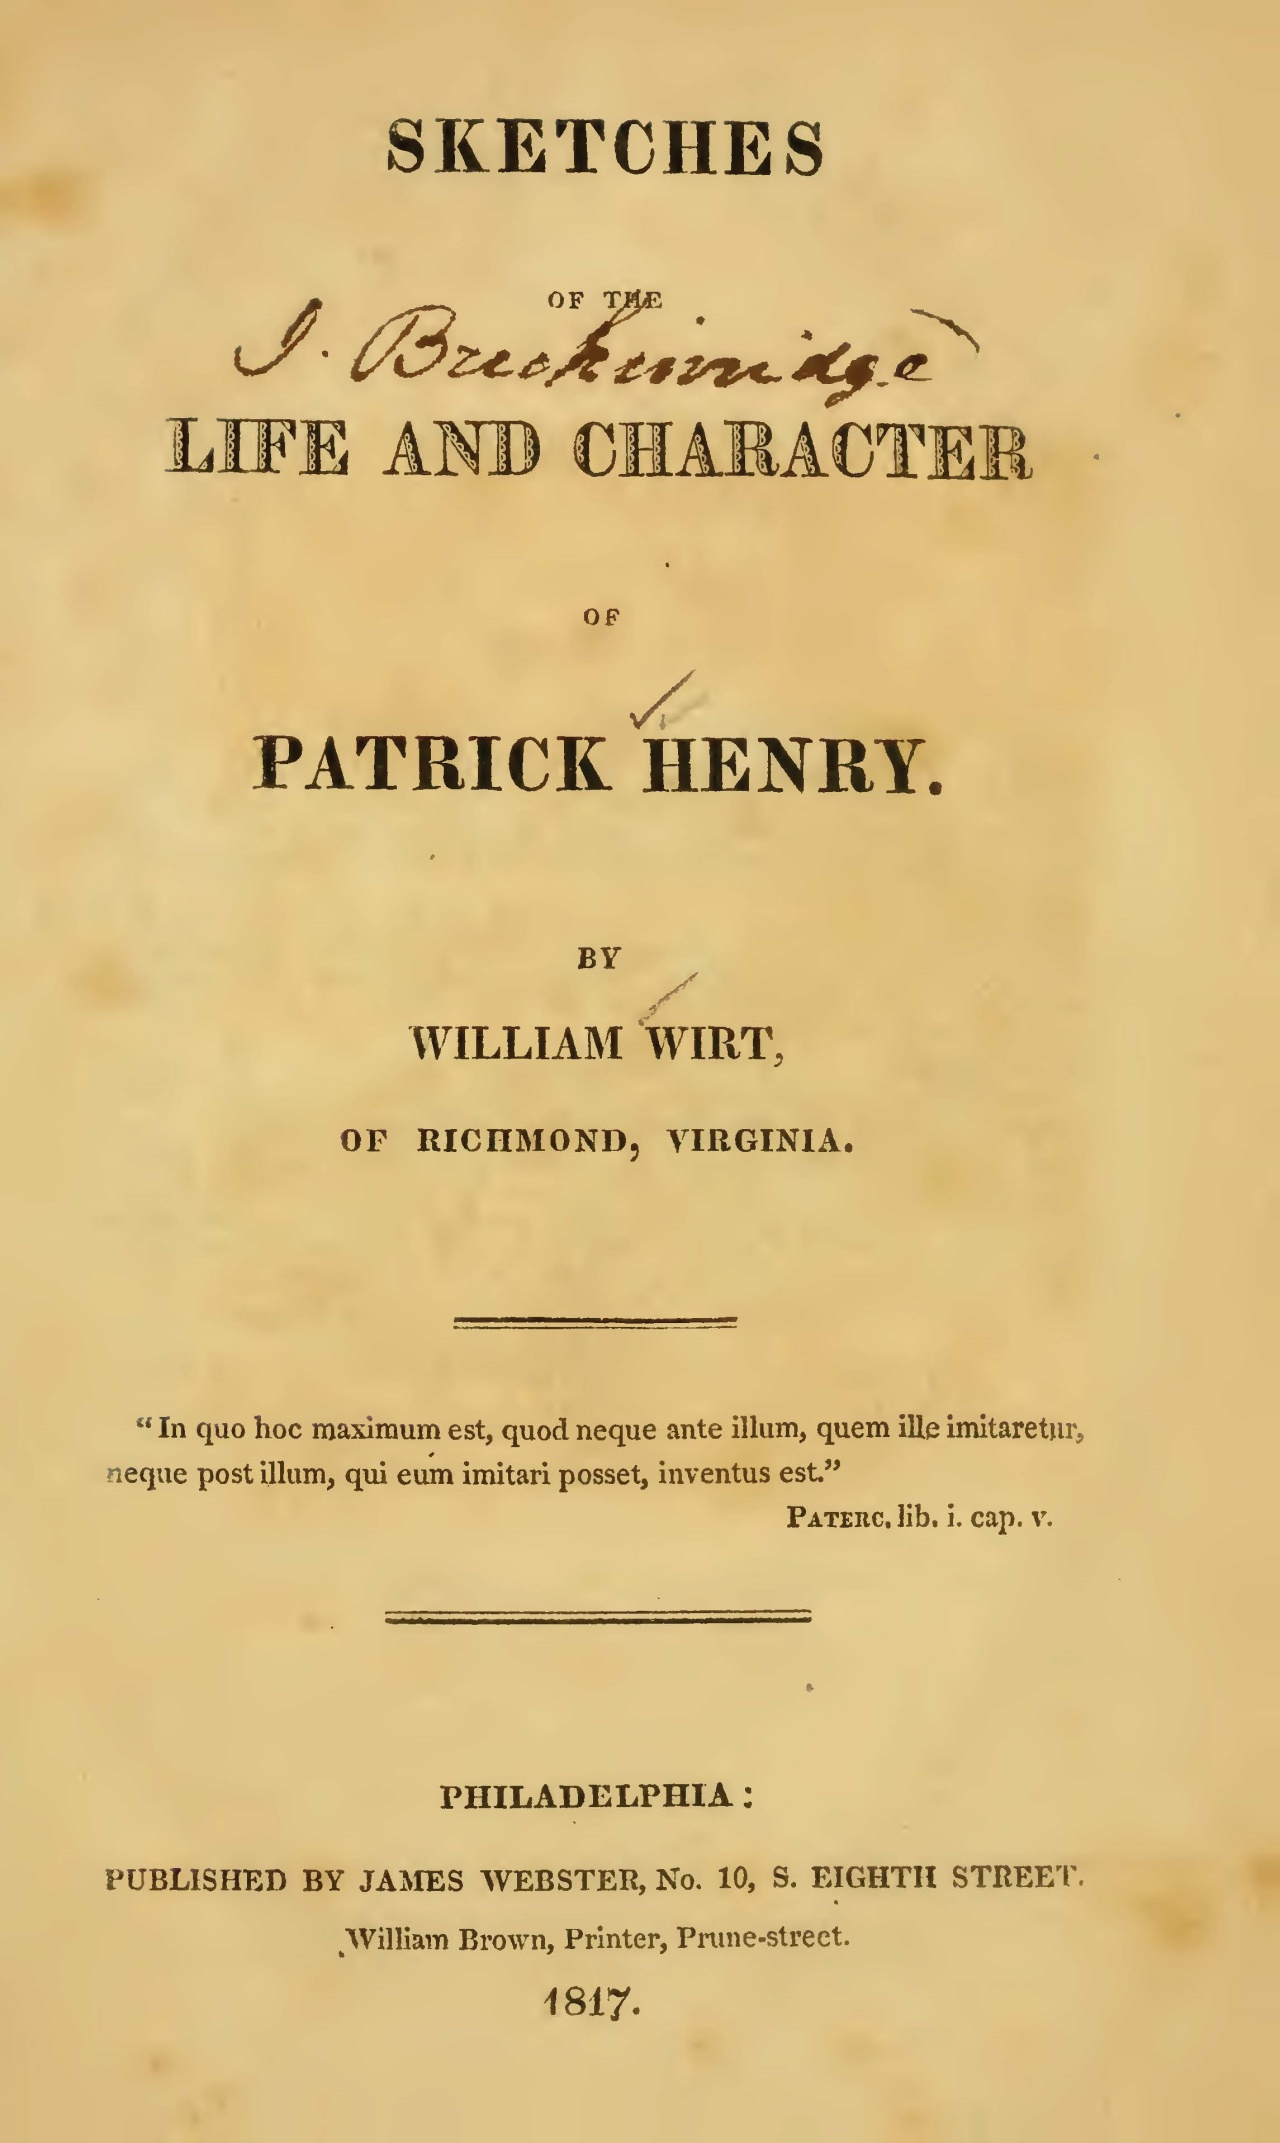 Wirt, William, Sketches of the Life and Character of Patrick Henry Title Page.jpg